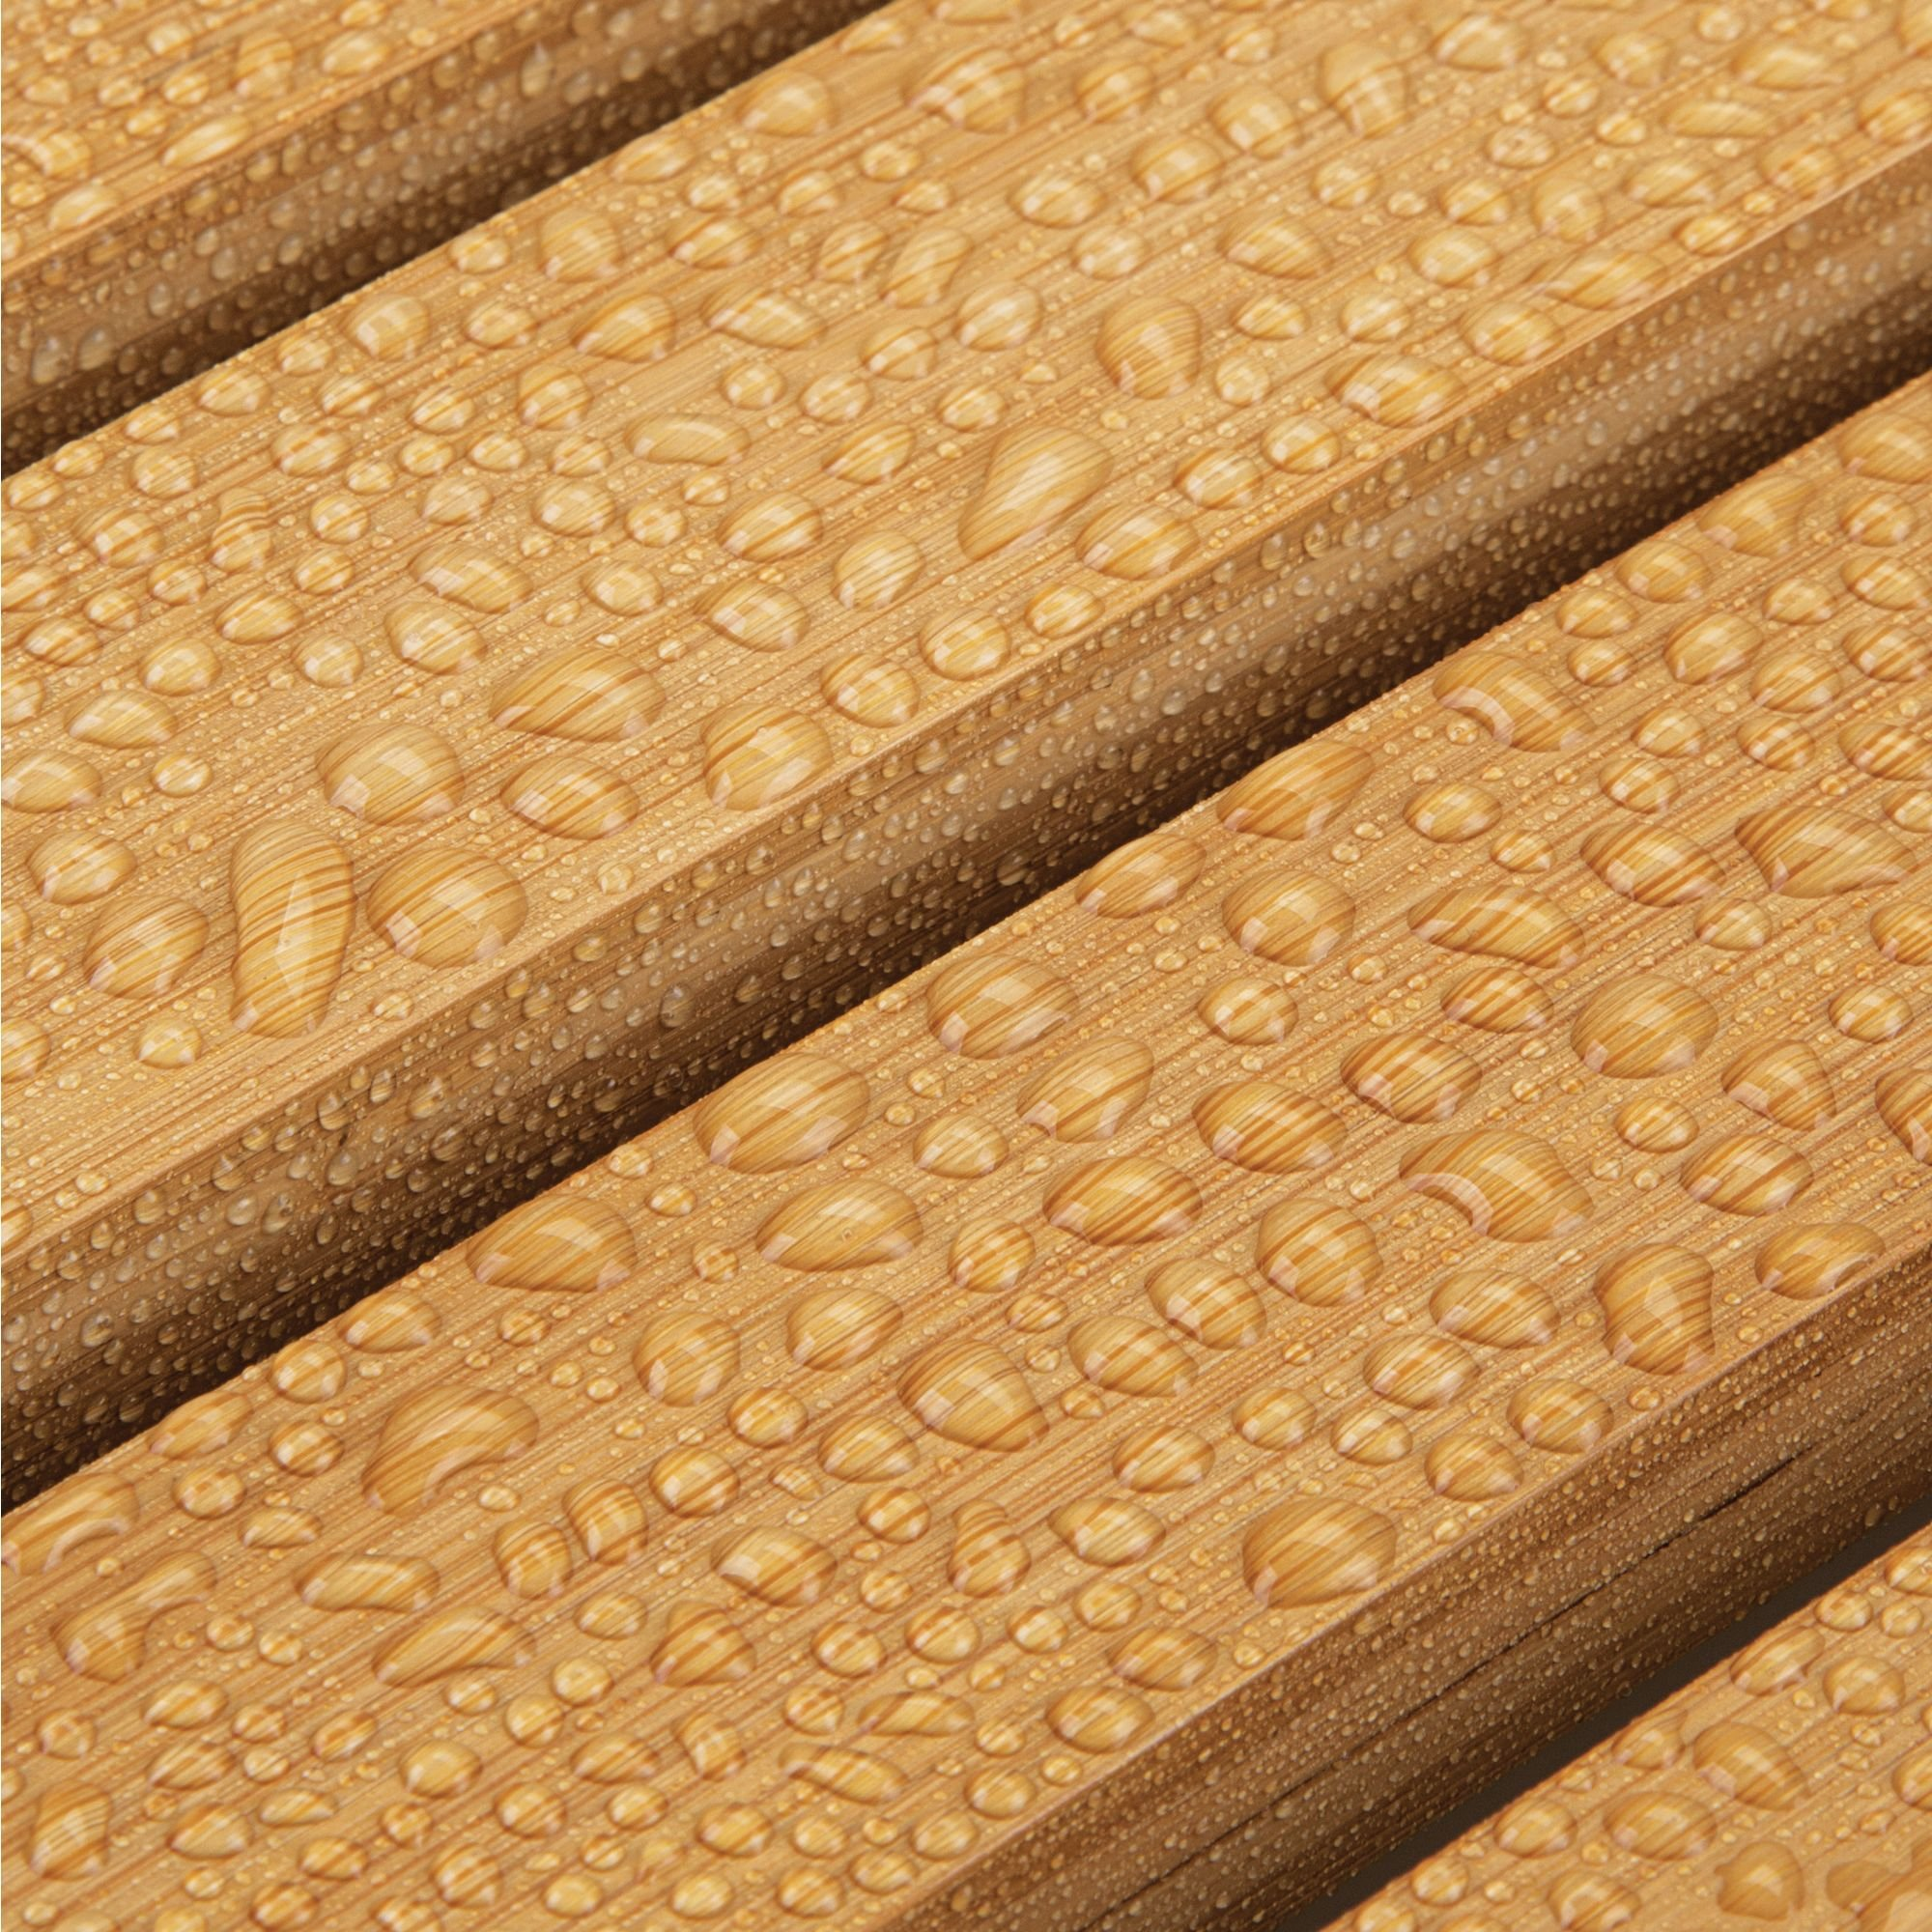 mDesign Natural Bamboo Non-Slip Rectangular Spa Bath Mat - for Bathroom Showers, Bathtubs, Floors - Slatted Design, Eco-Friendly - Indoor and Outdoor use - 100% Bamboo Wood, Natural Light Wood by mDesign (Image #4)